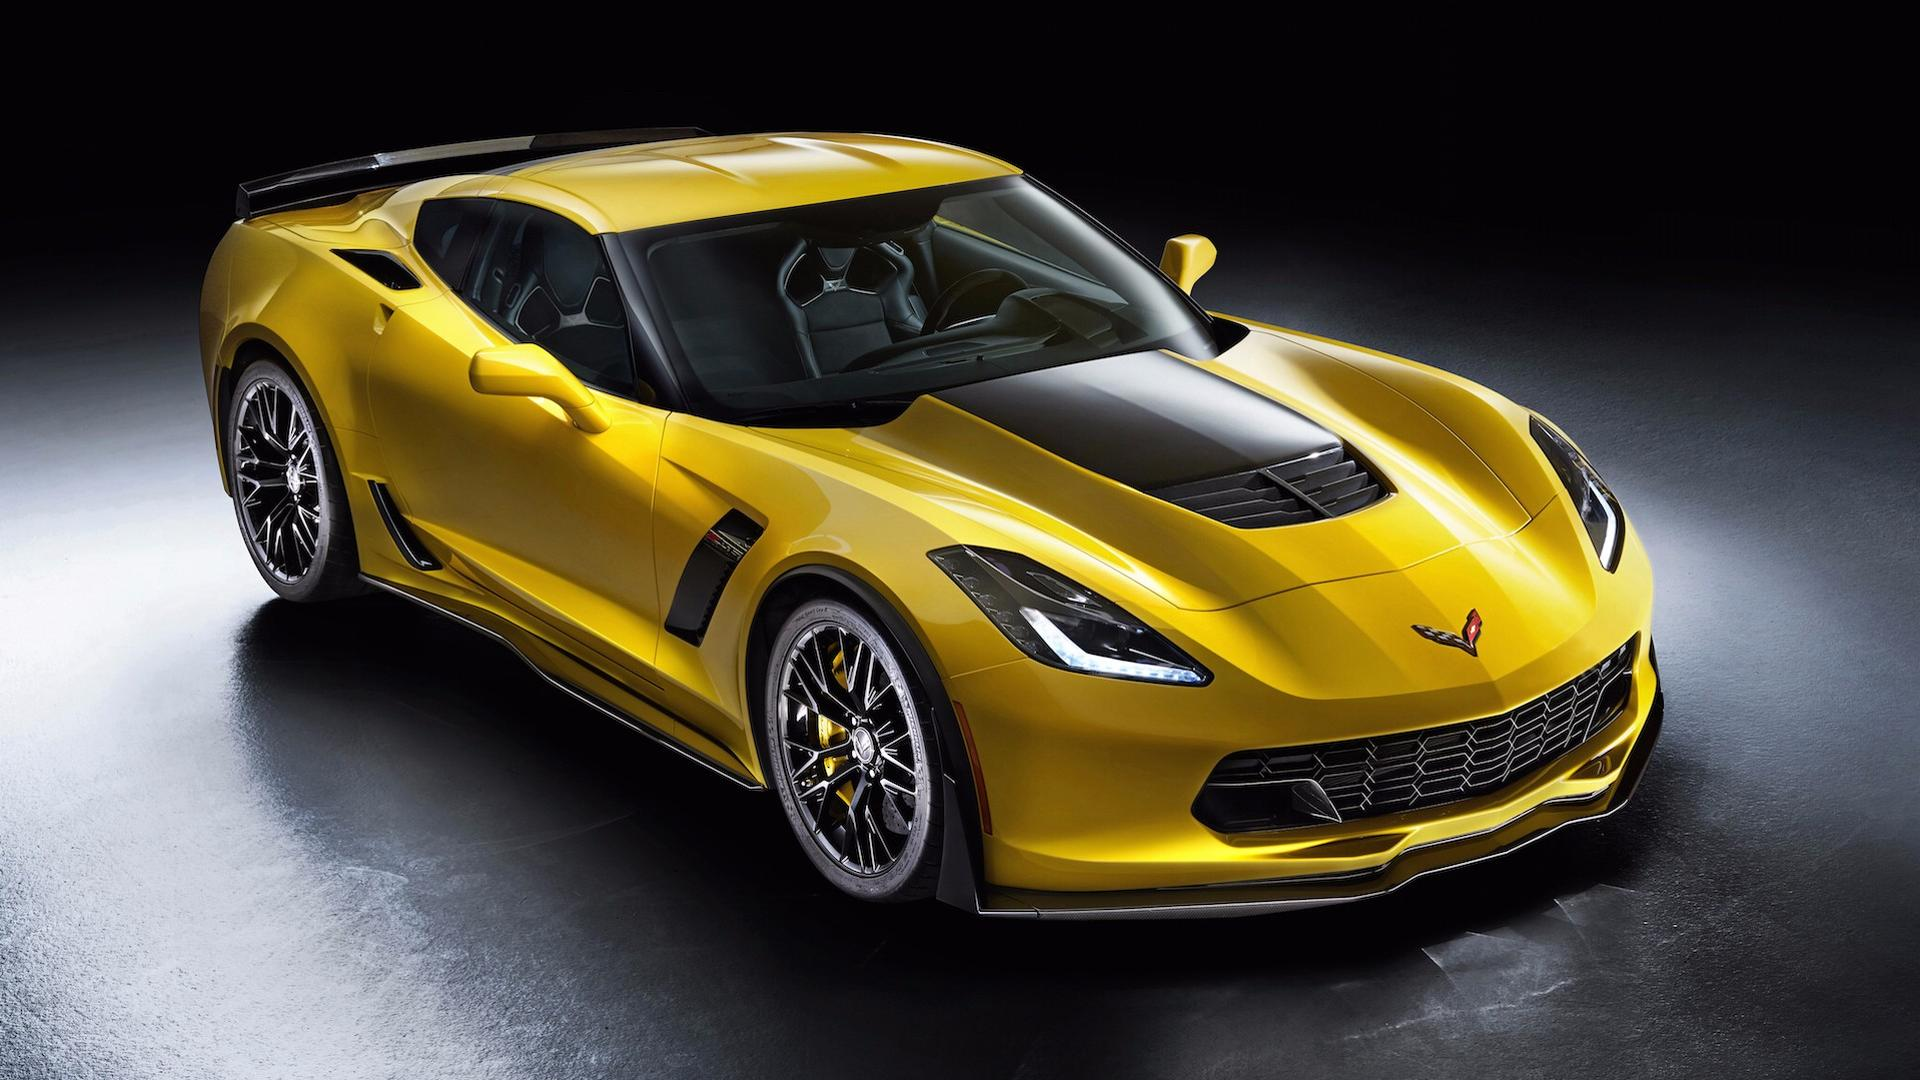 Chevy Ends Year With Deep Discounts Throughout Range Like $12k Off Z06